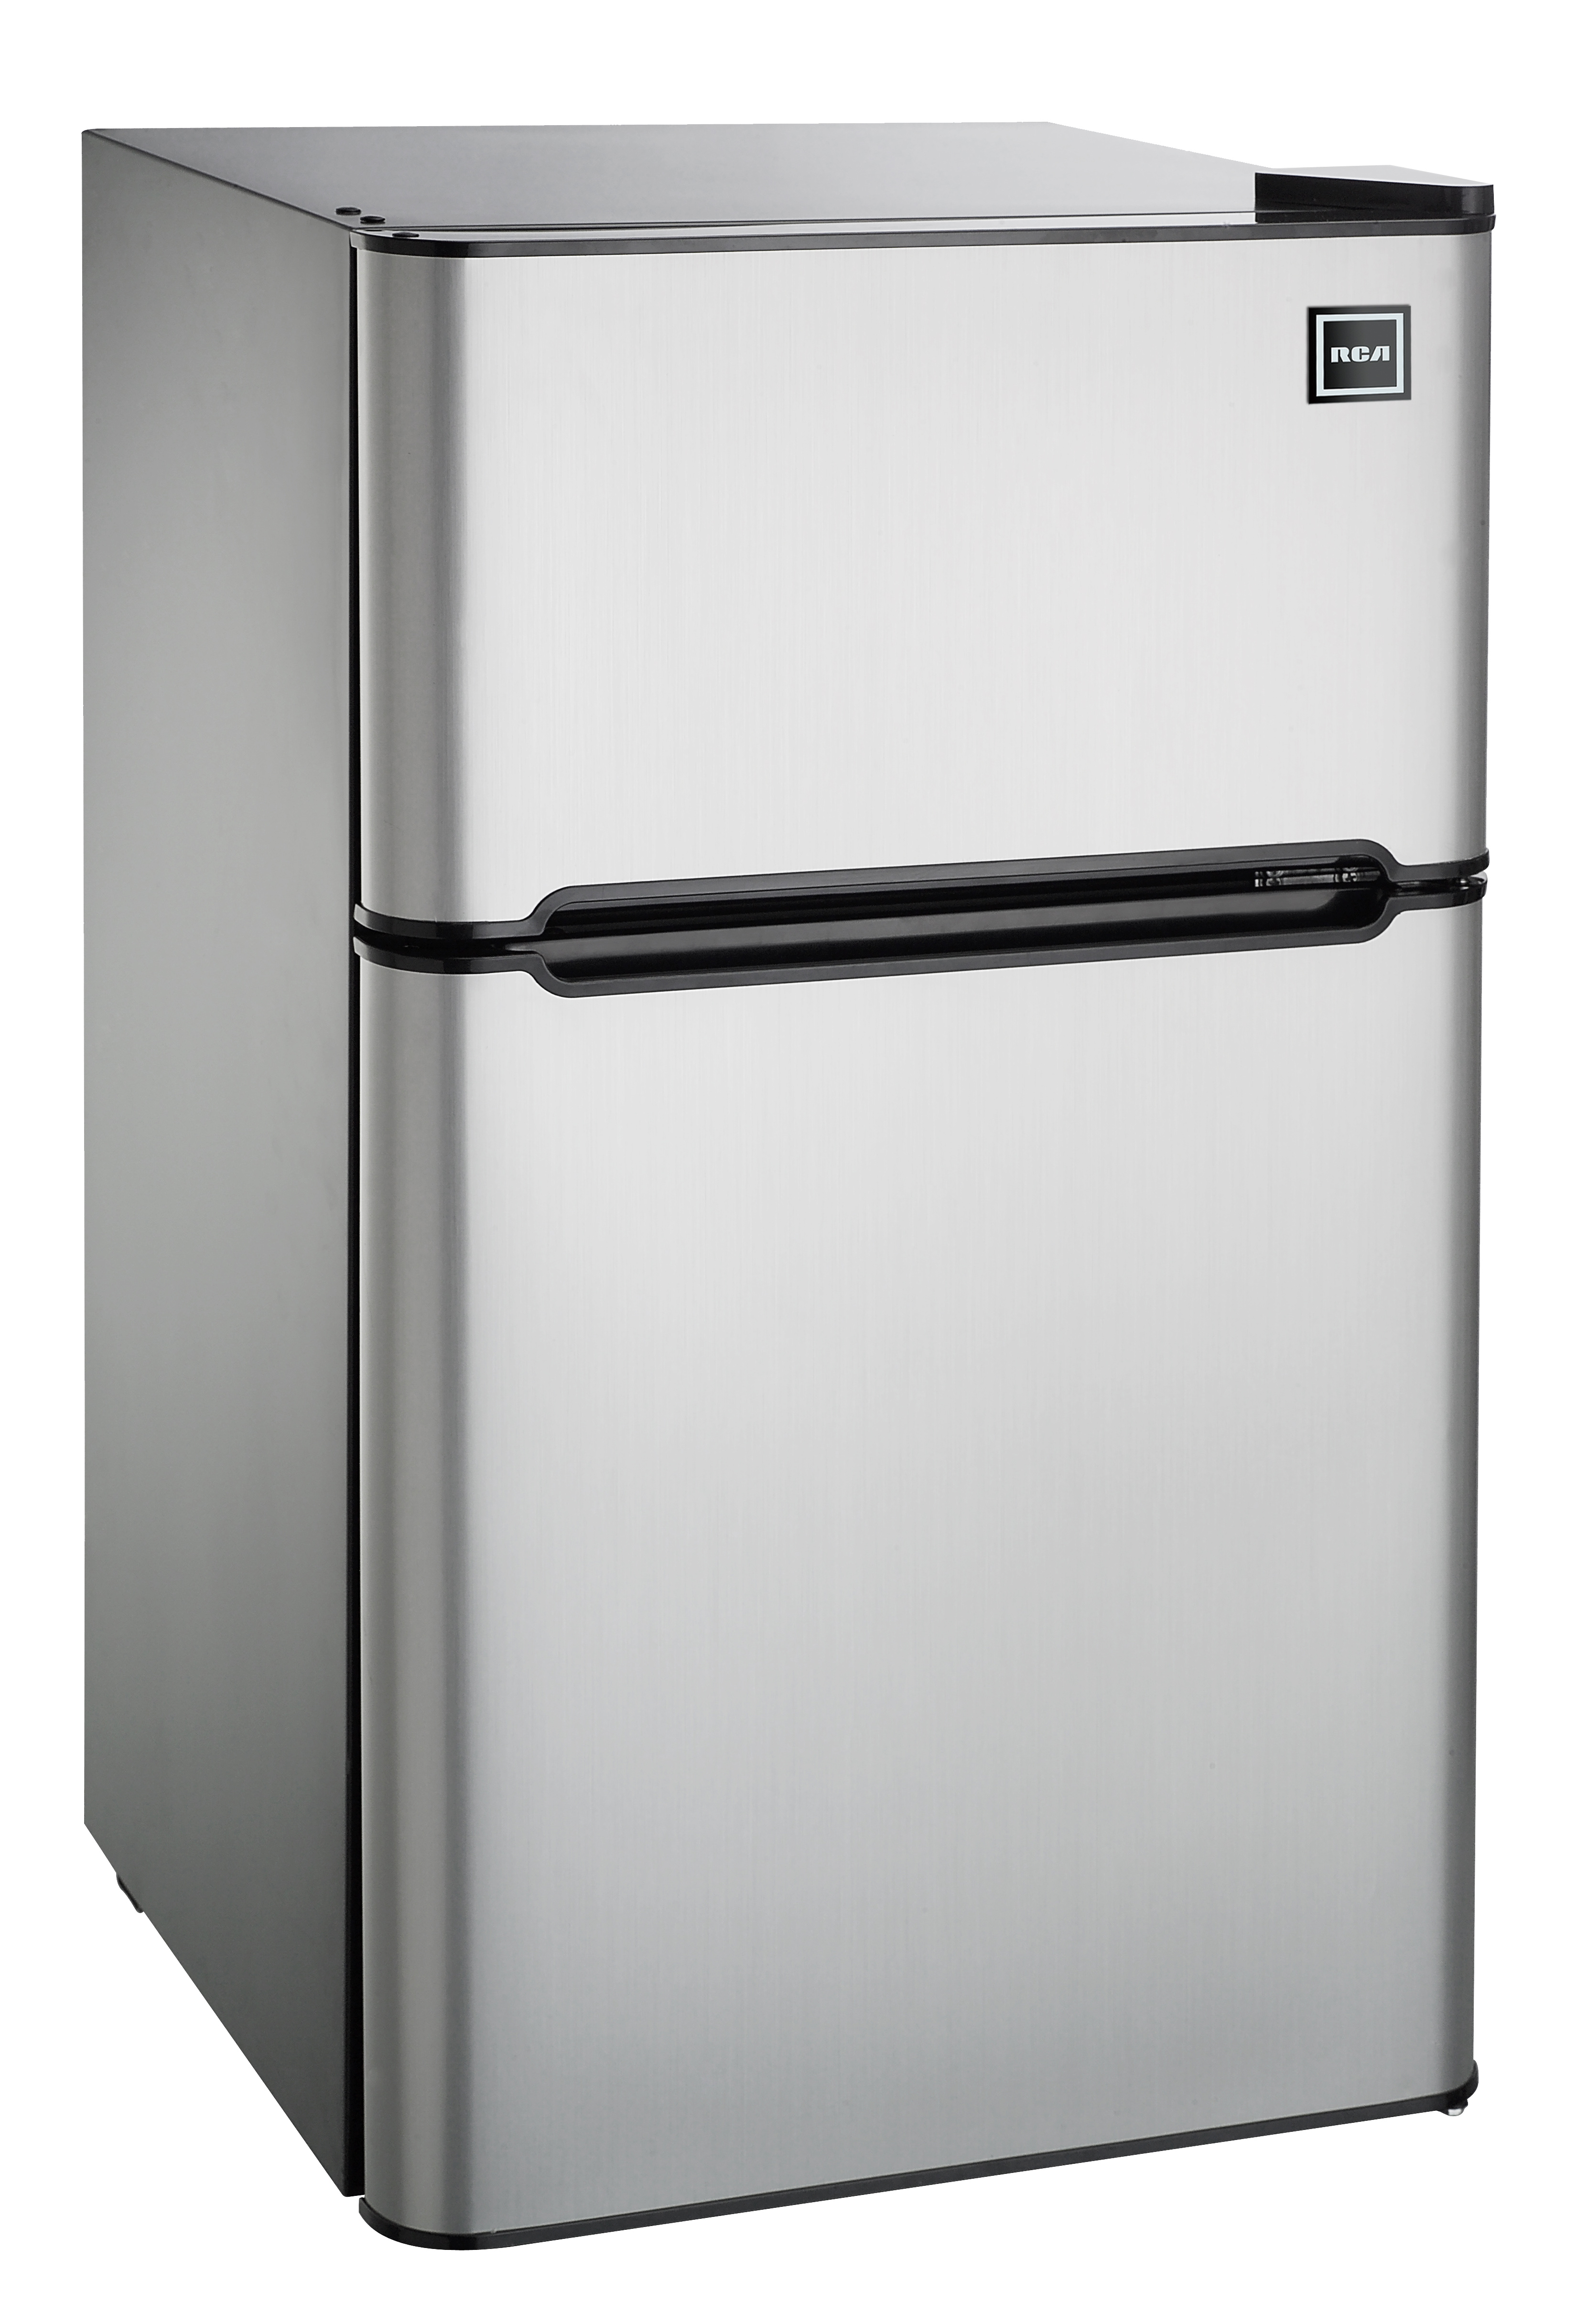 Mini Fridge And Freezer Details About Rca 3 2 Cu Ft Two Door Mini Fridge With Freezer Rfr834 Stainless Steel